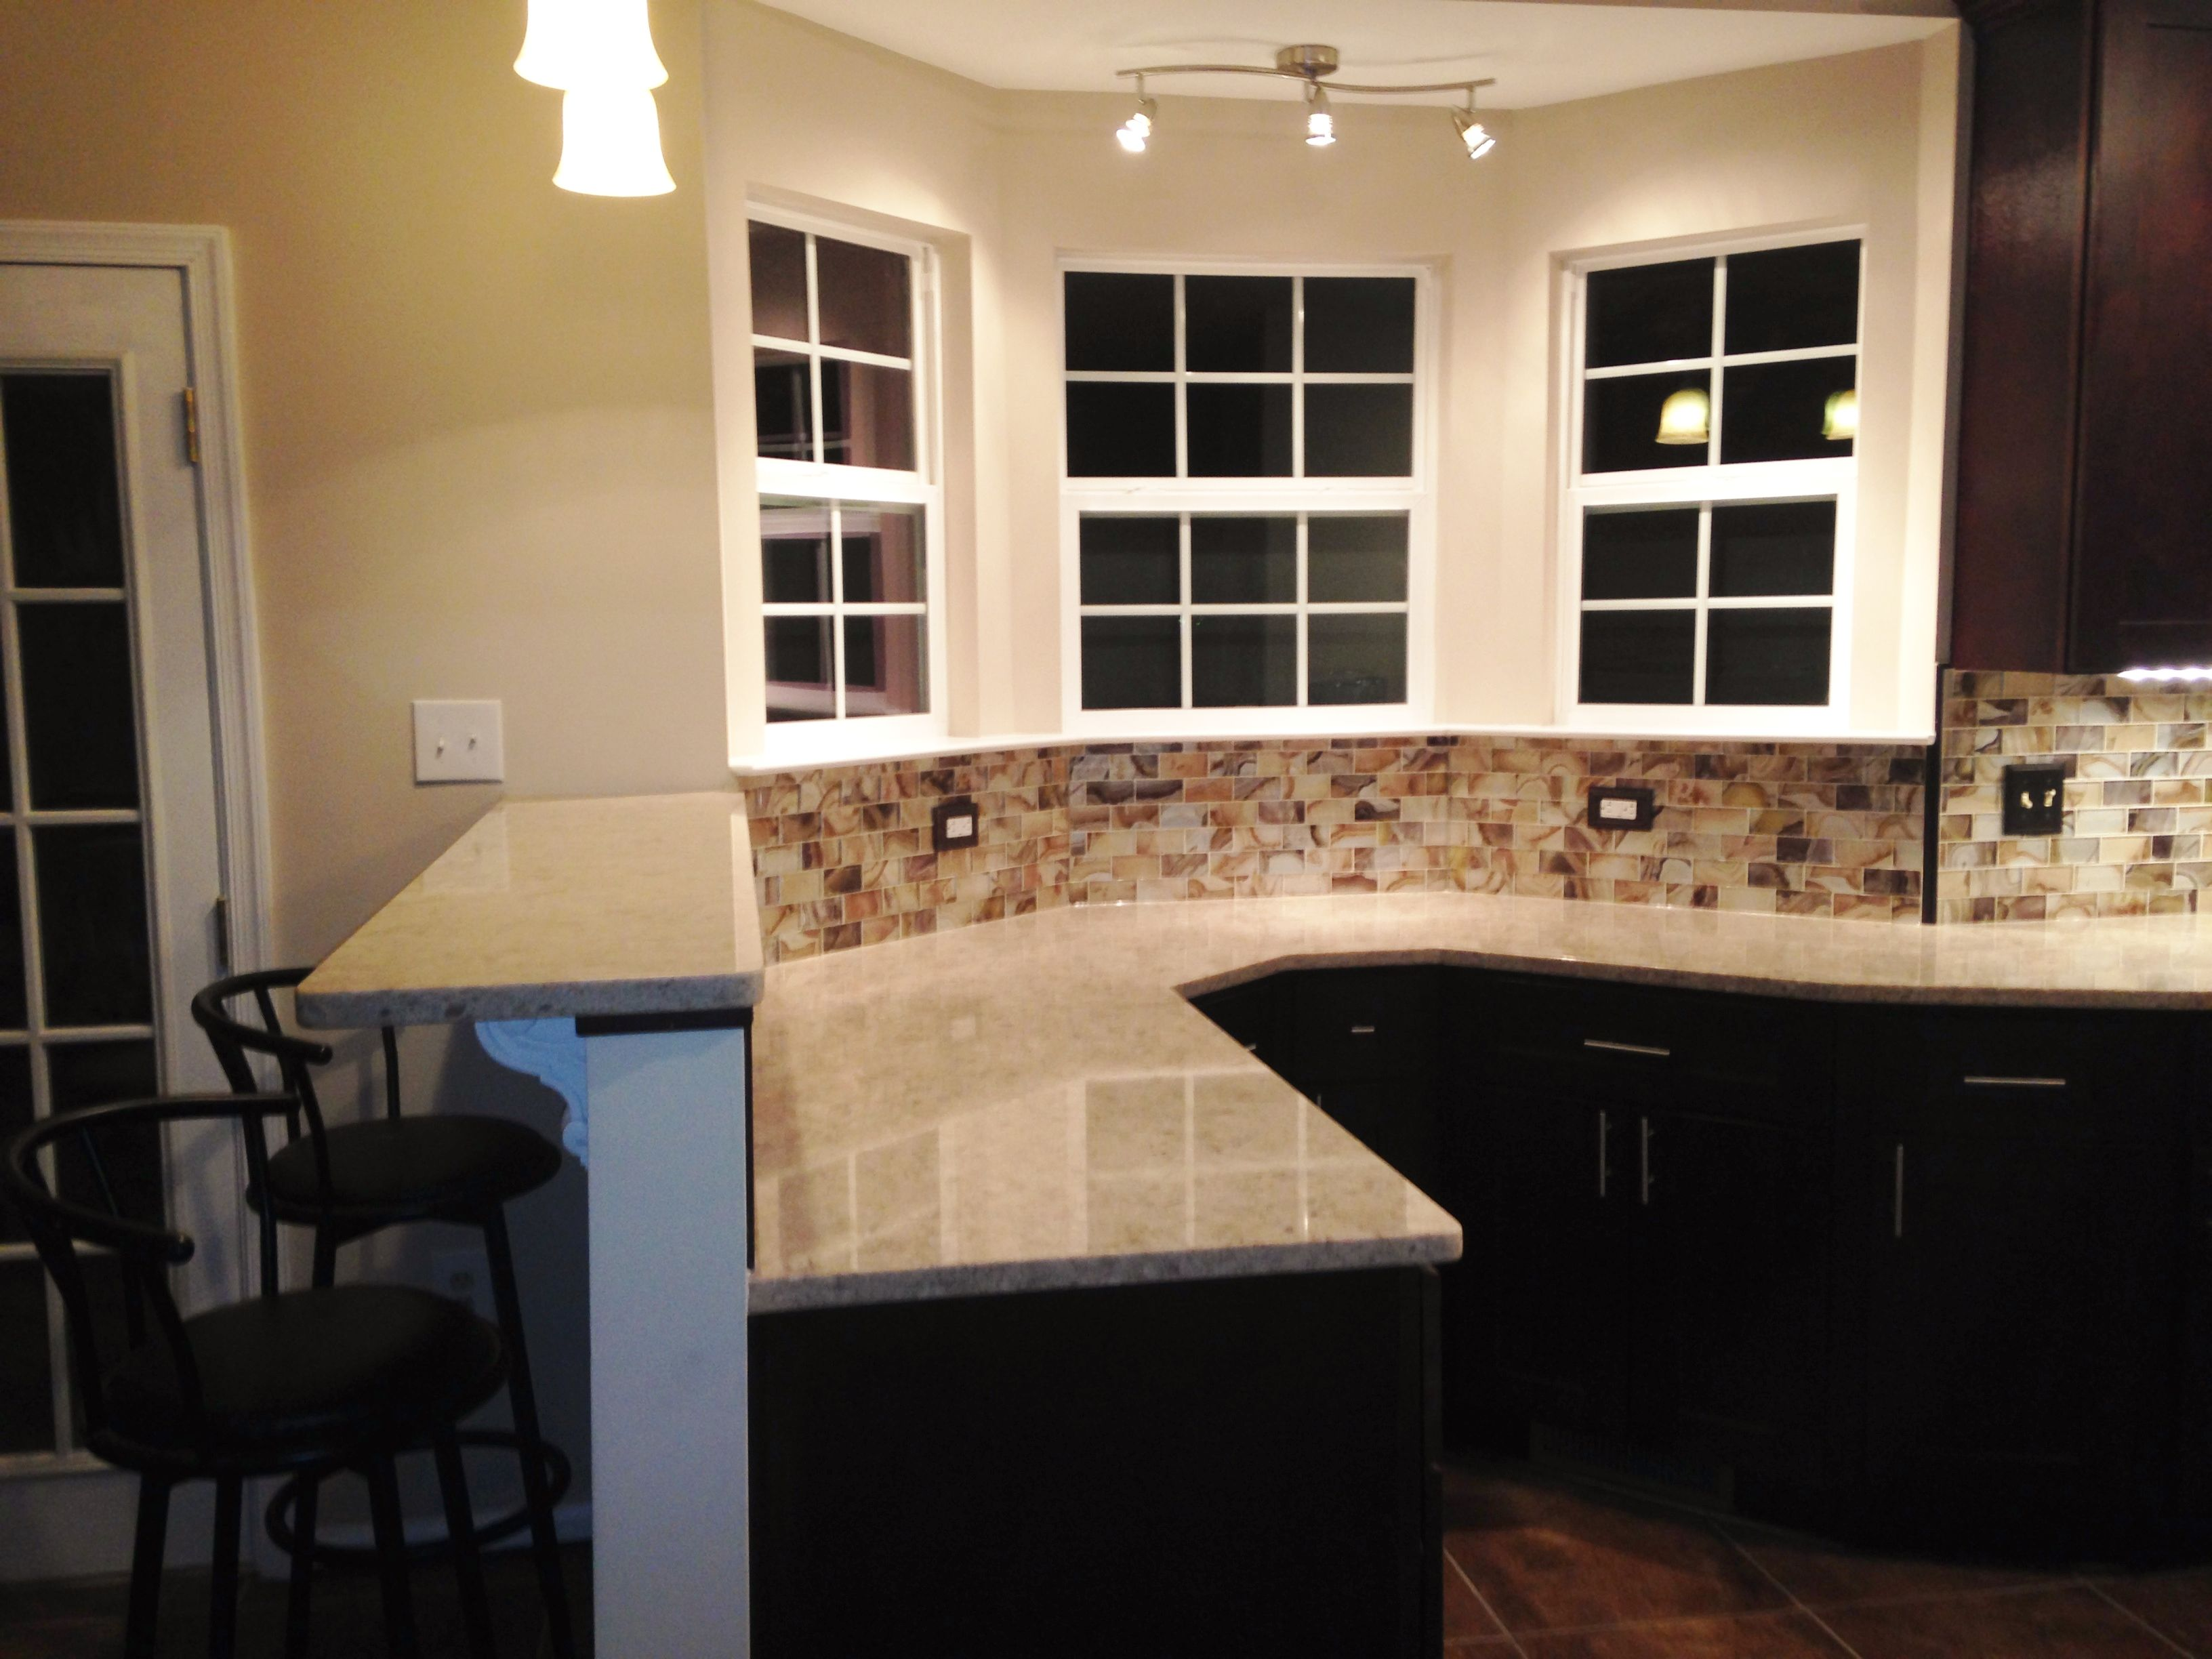 backsplash lighting. kitchen remodel glass tile backsplash silestone countertop pendant lighting directional lights g